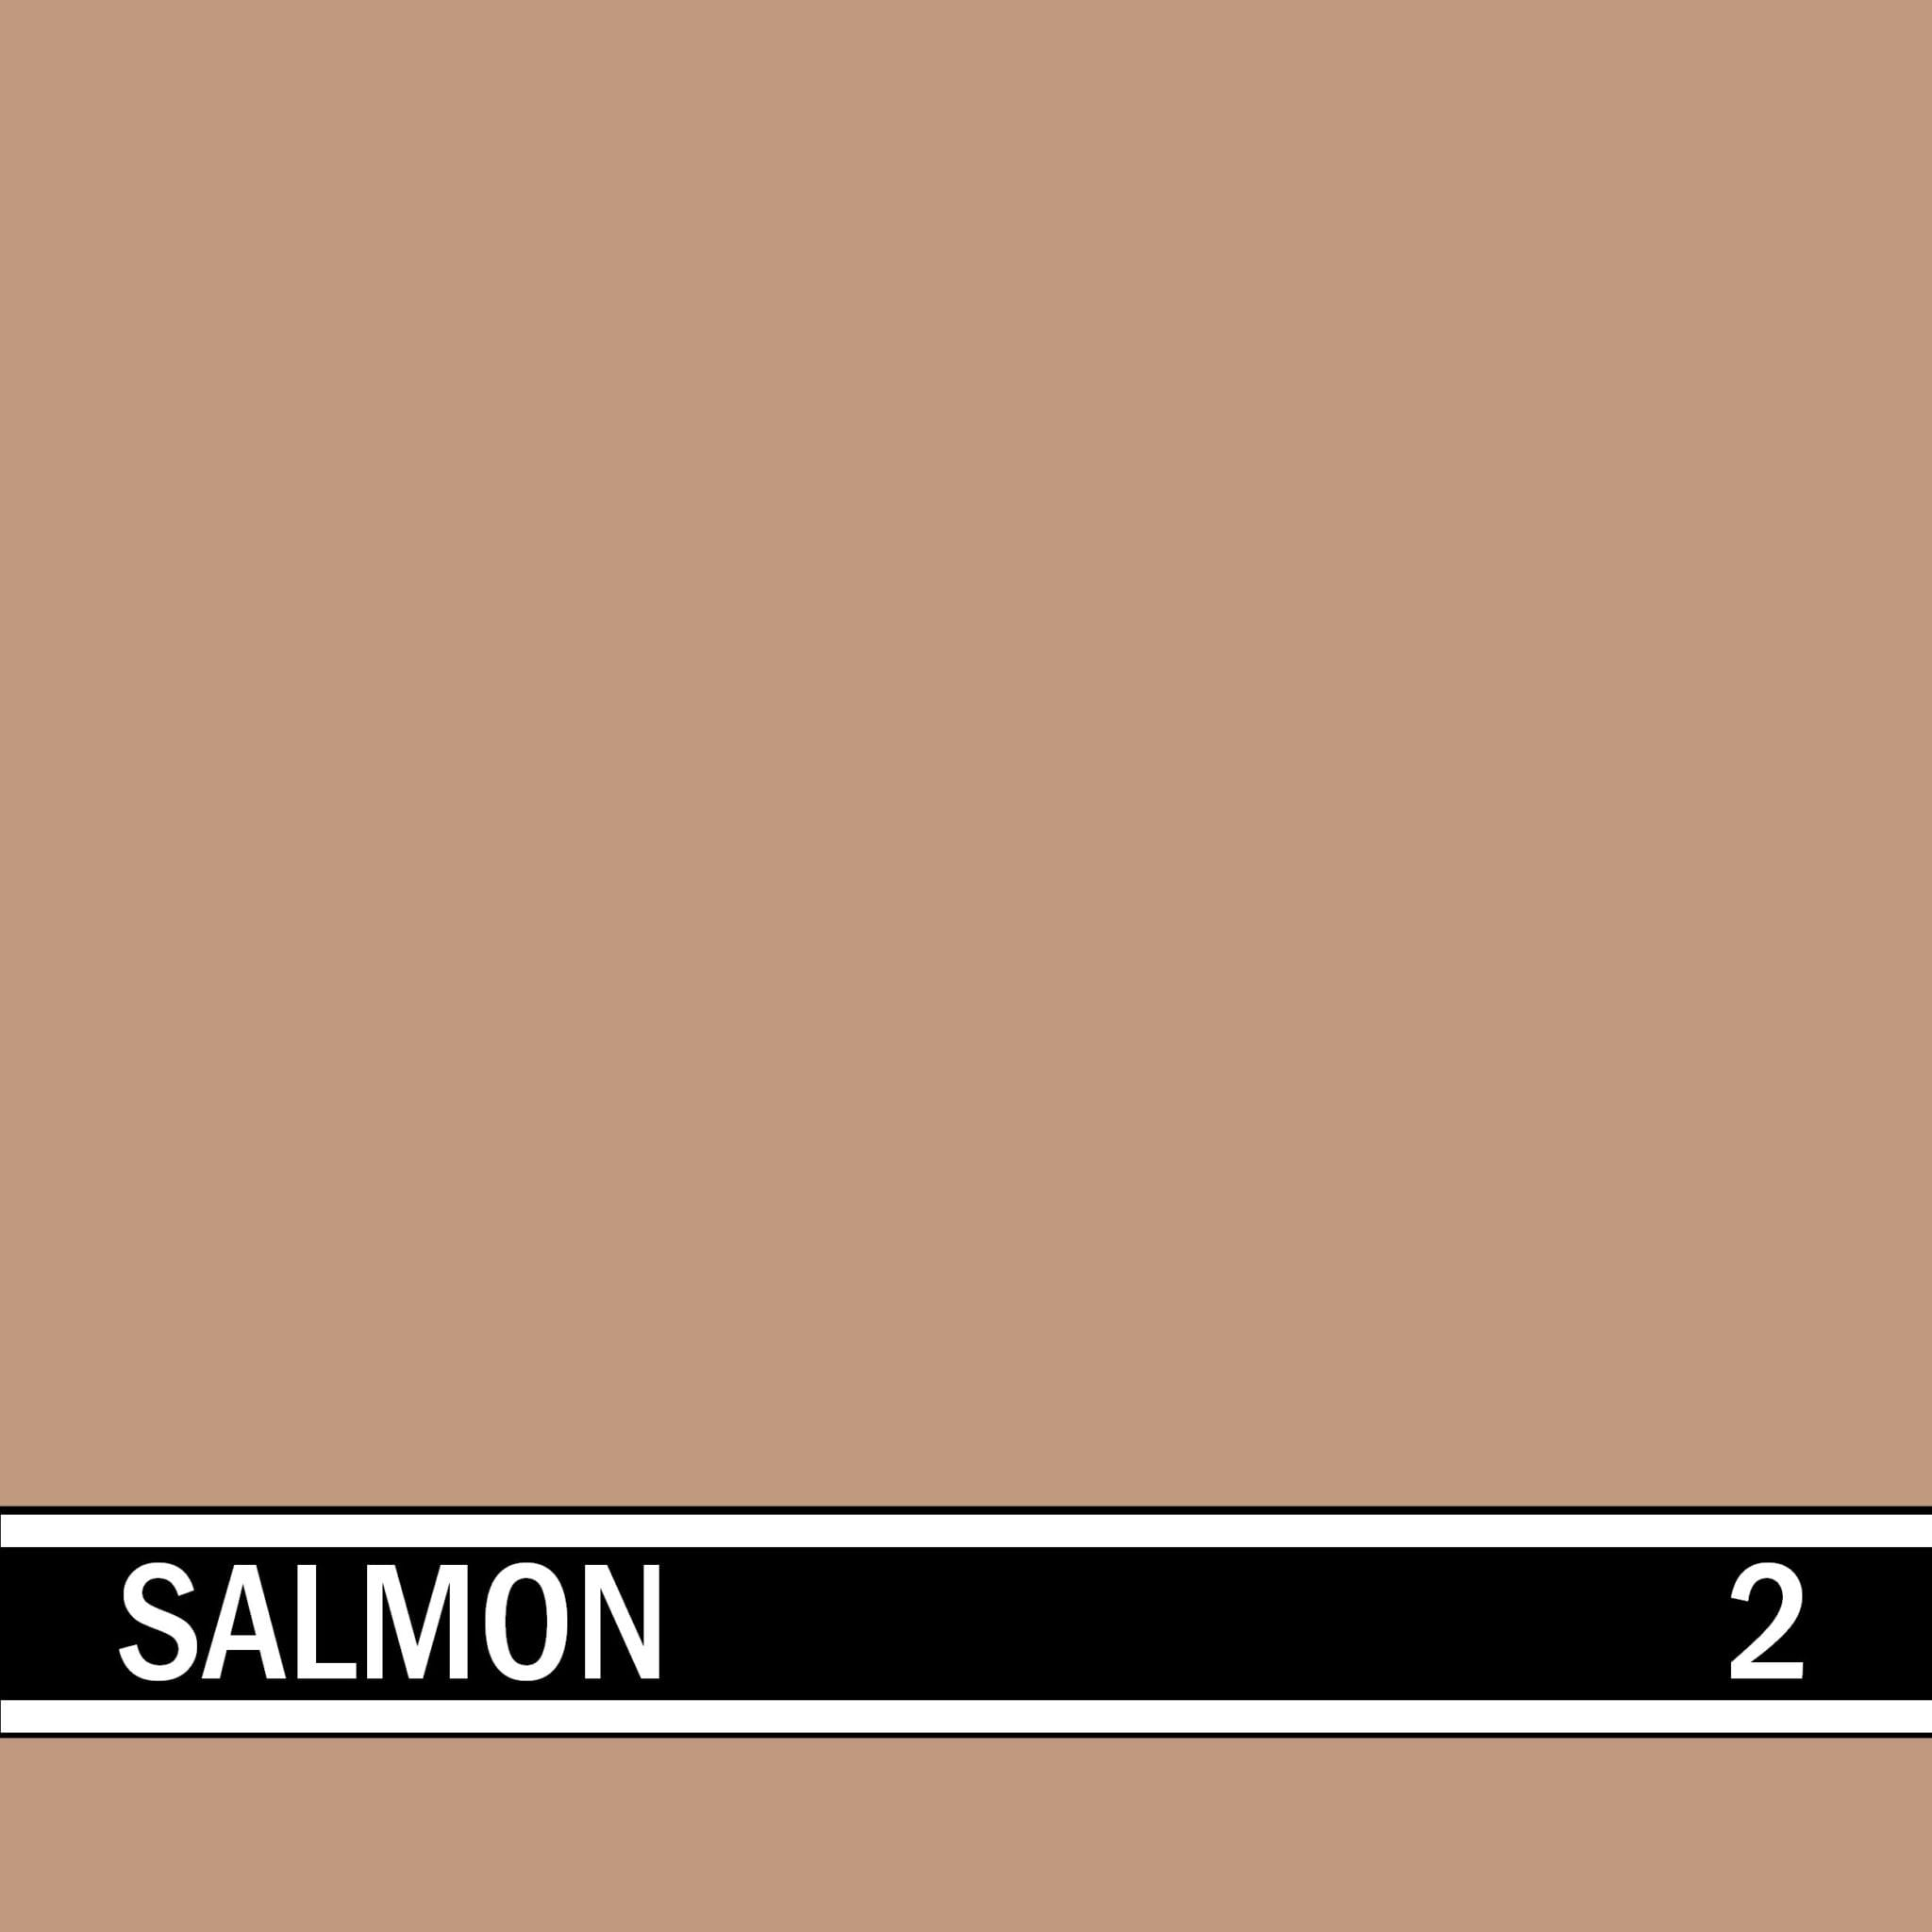 Salmon integral concrete color for stamped concrete and decorative colored concrete